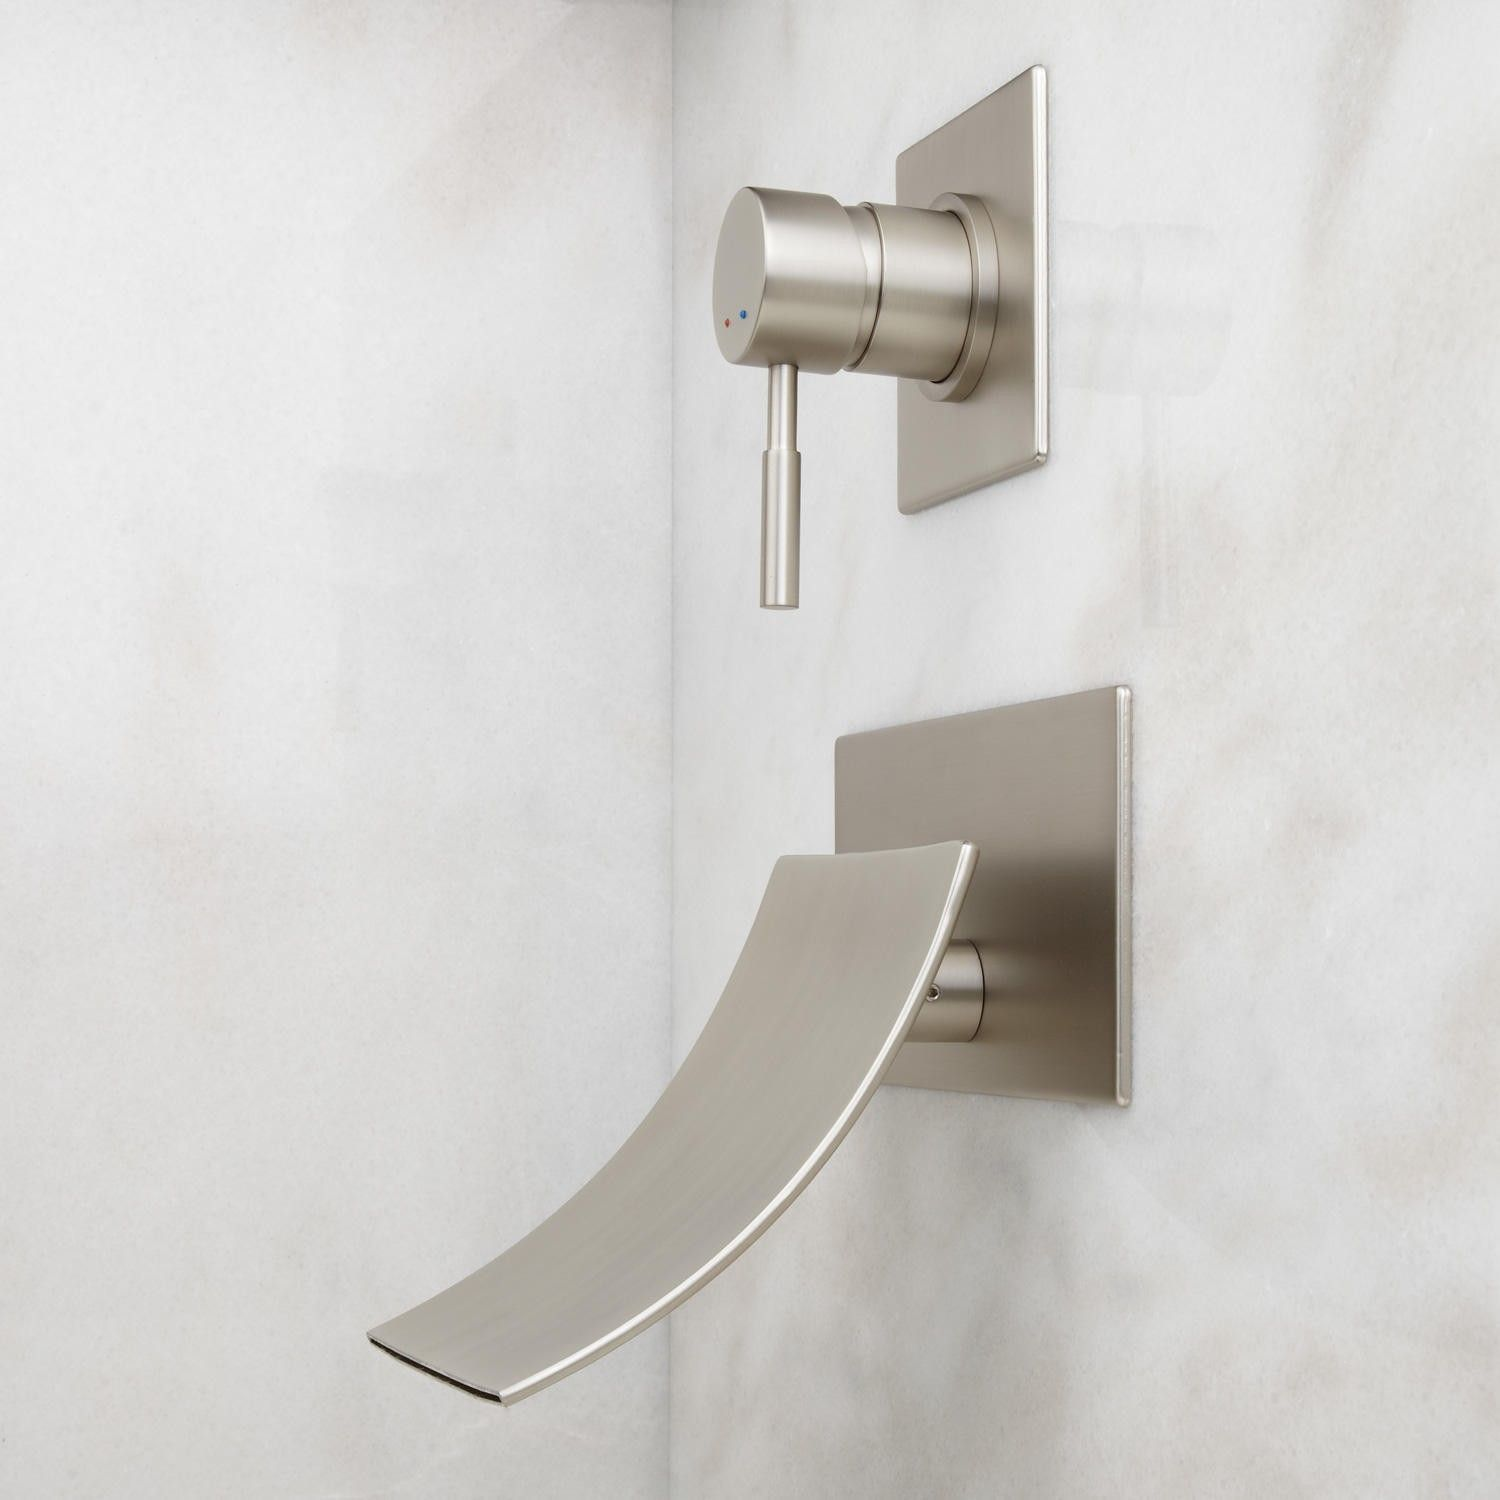 Reston Wall Mount Waterfall Tub Faucet Wall Mount Faucet and Tubs